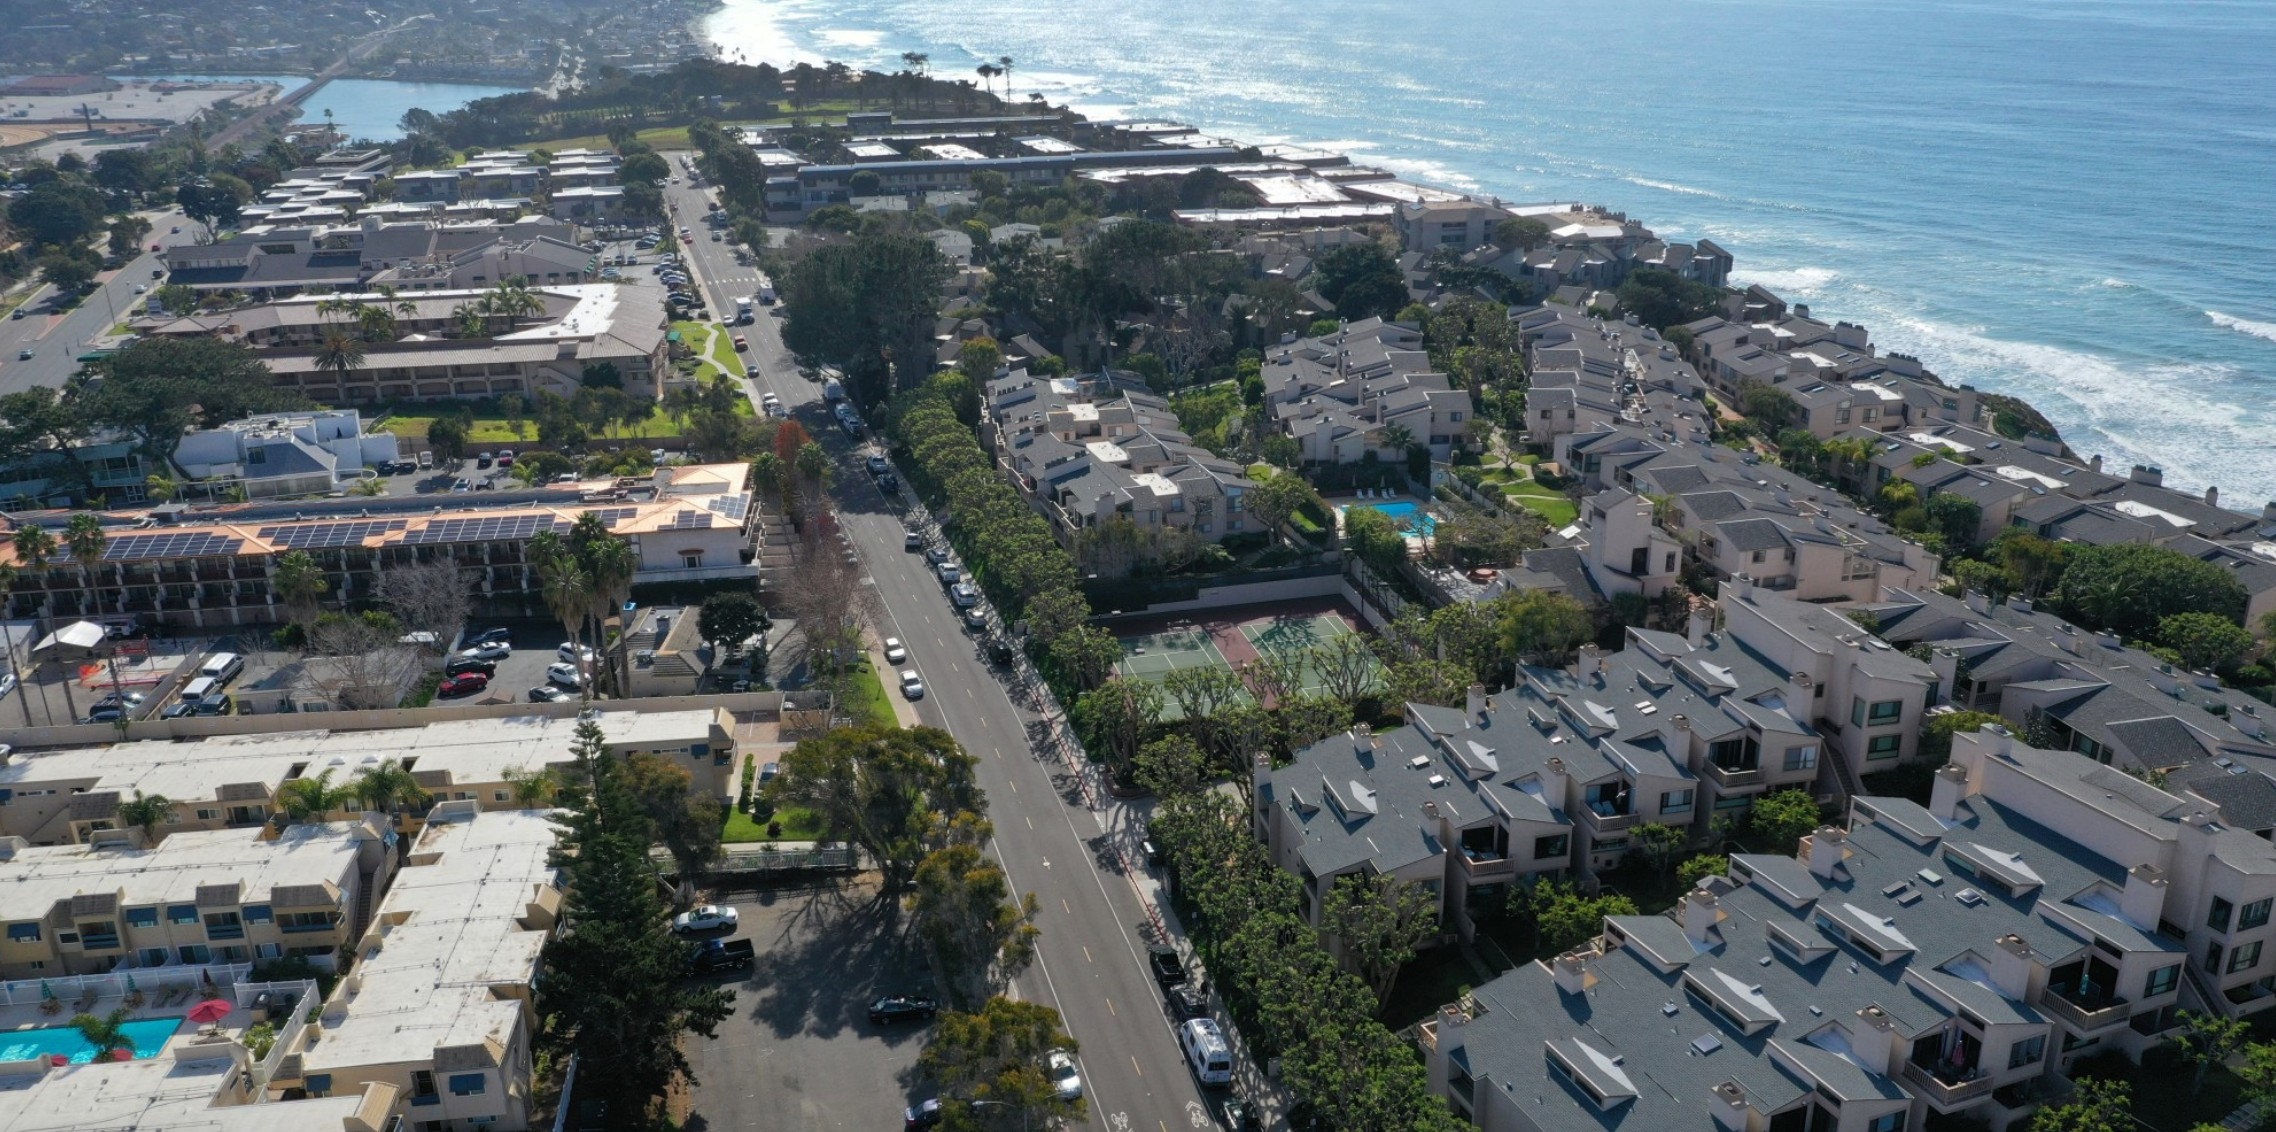 An aerial view of the site of a proposed affordable housing project near million-dollar condos in Solana Beach in San Diego County. It's a 10-unit project that has been in the works for the last decade and has yet to break ground.(Allen J. Schaben / Los Angeles Times)